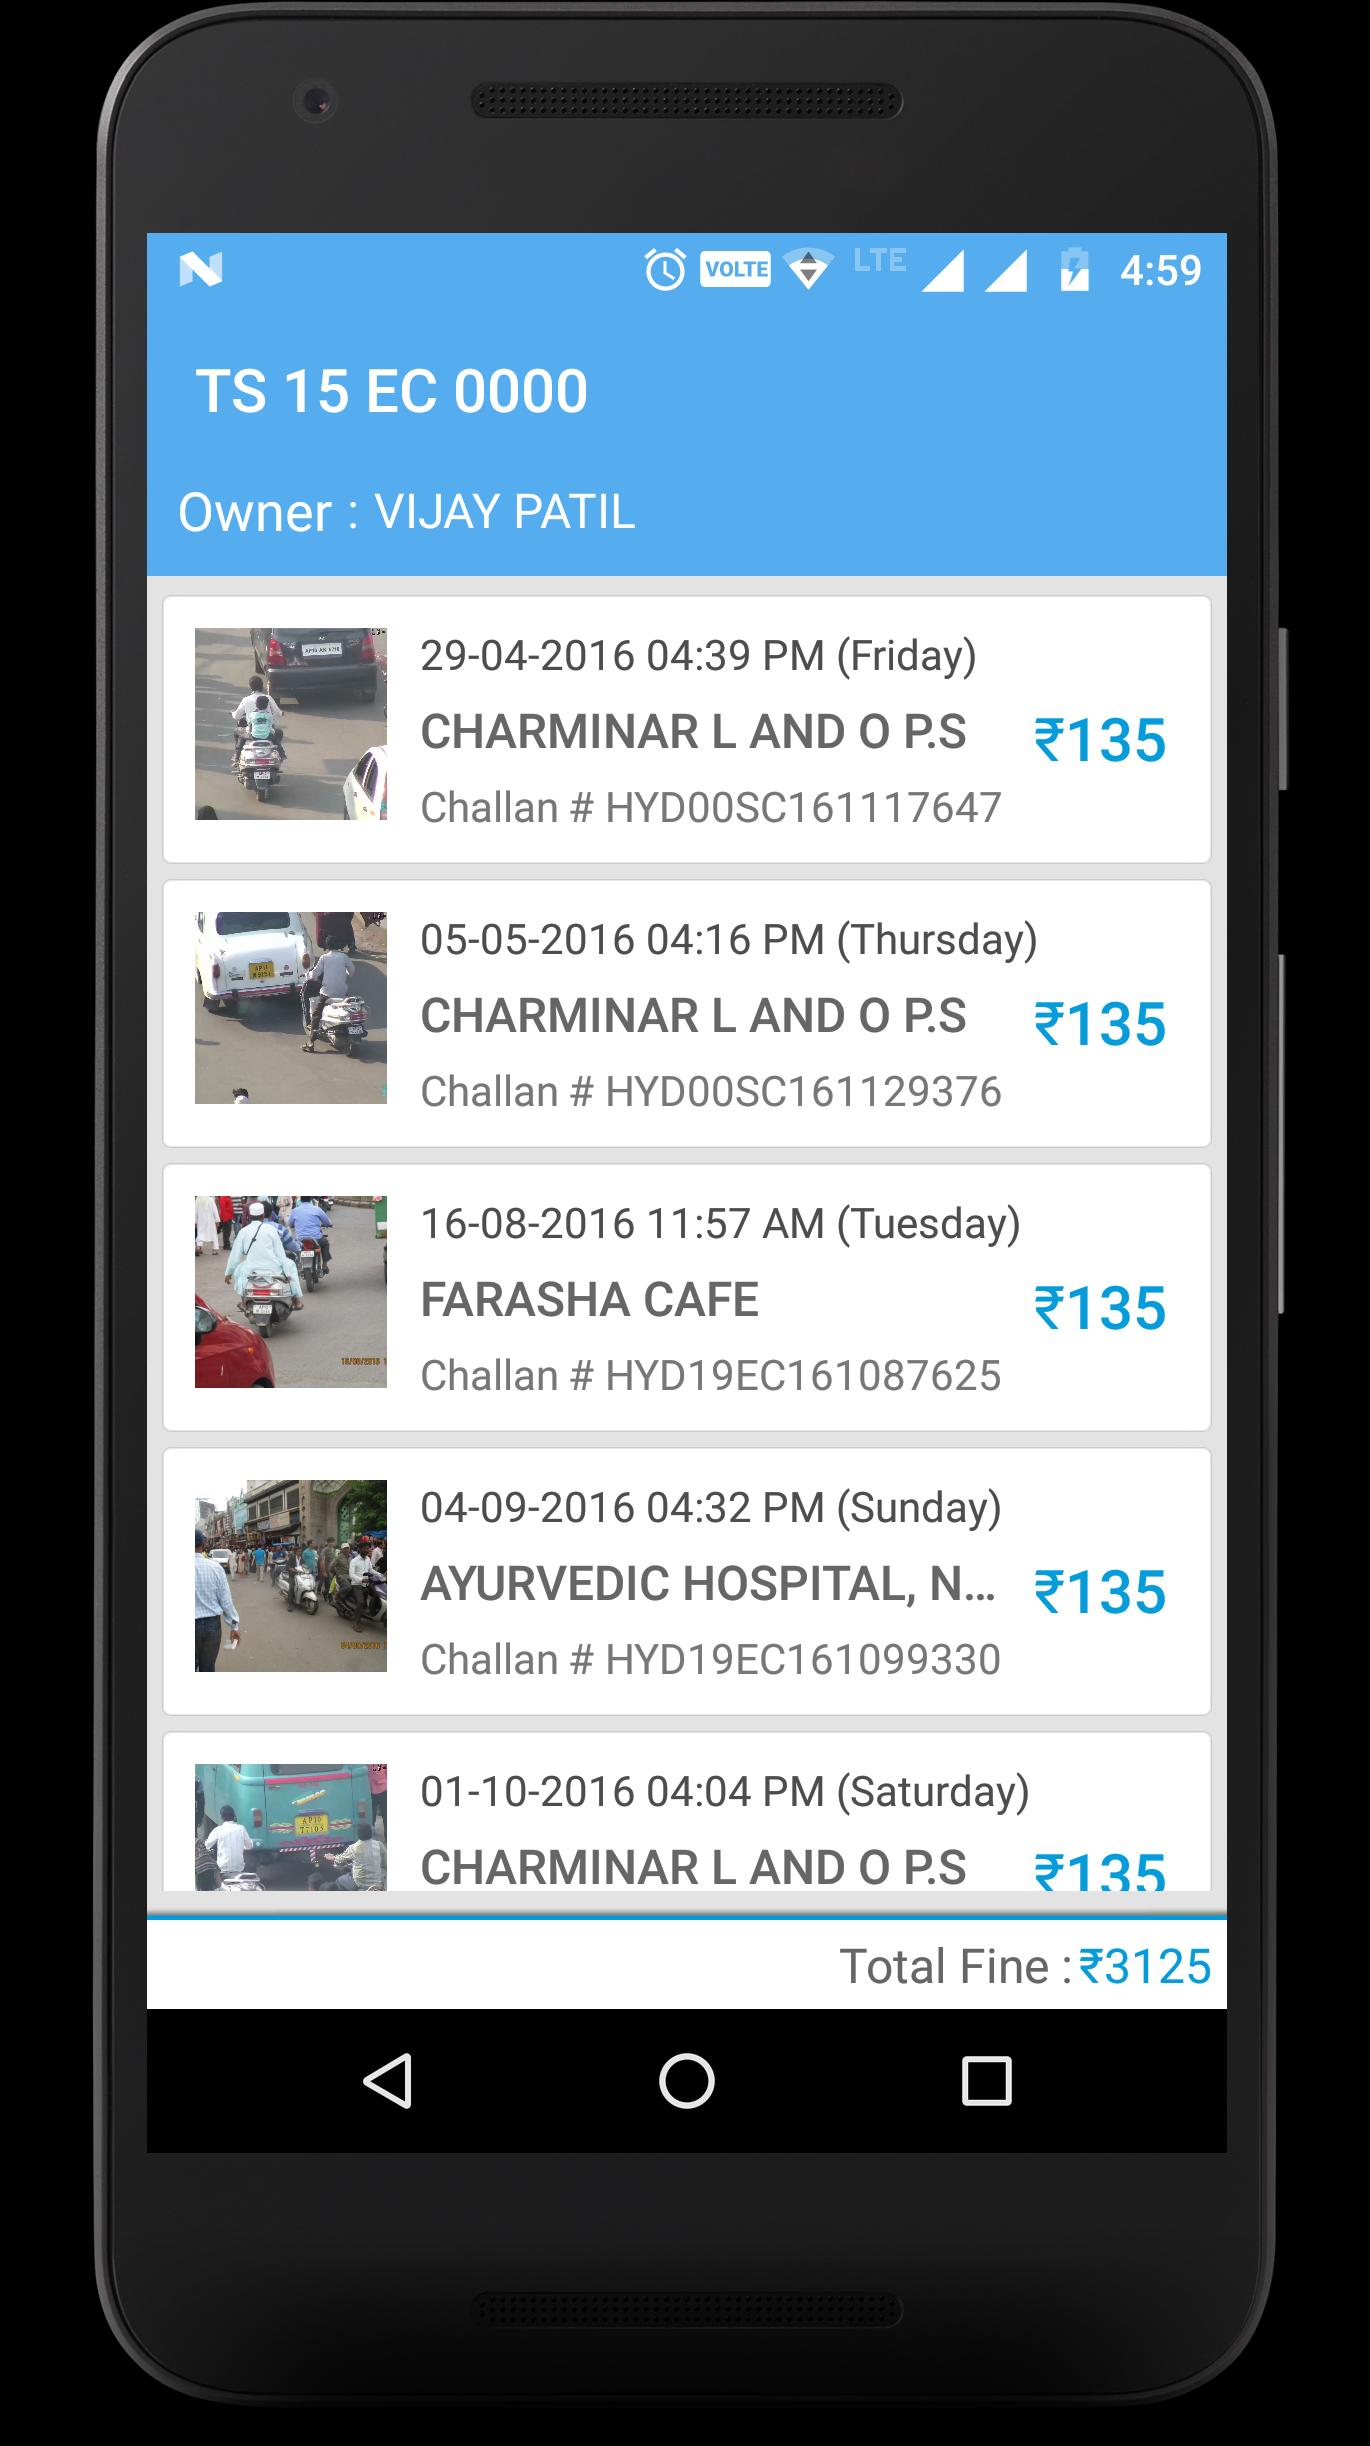 e Challan Telangana Hyderabad for Android - APK Download